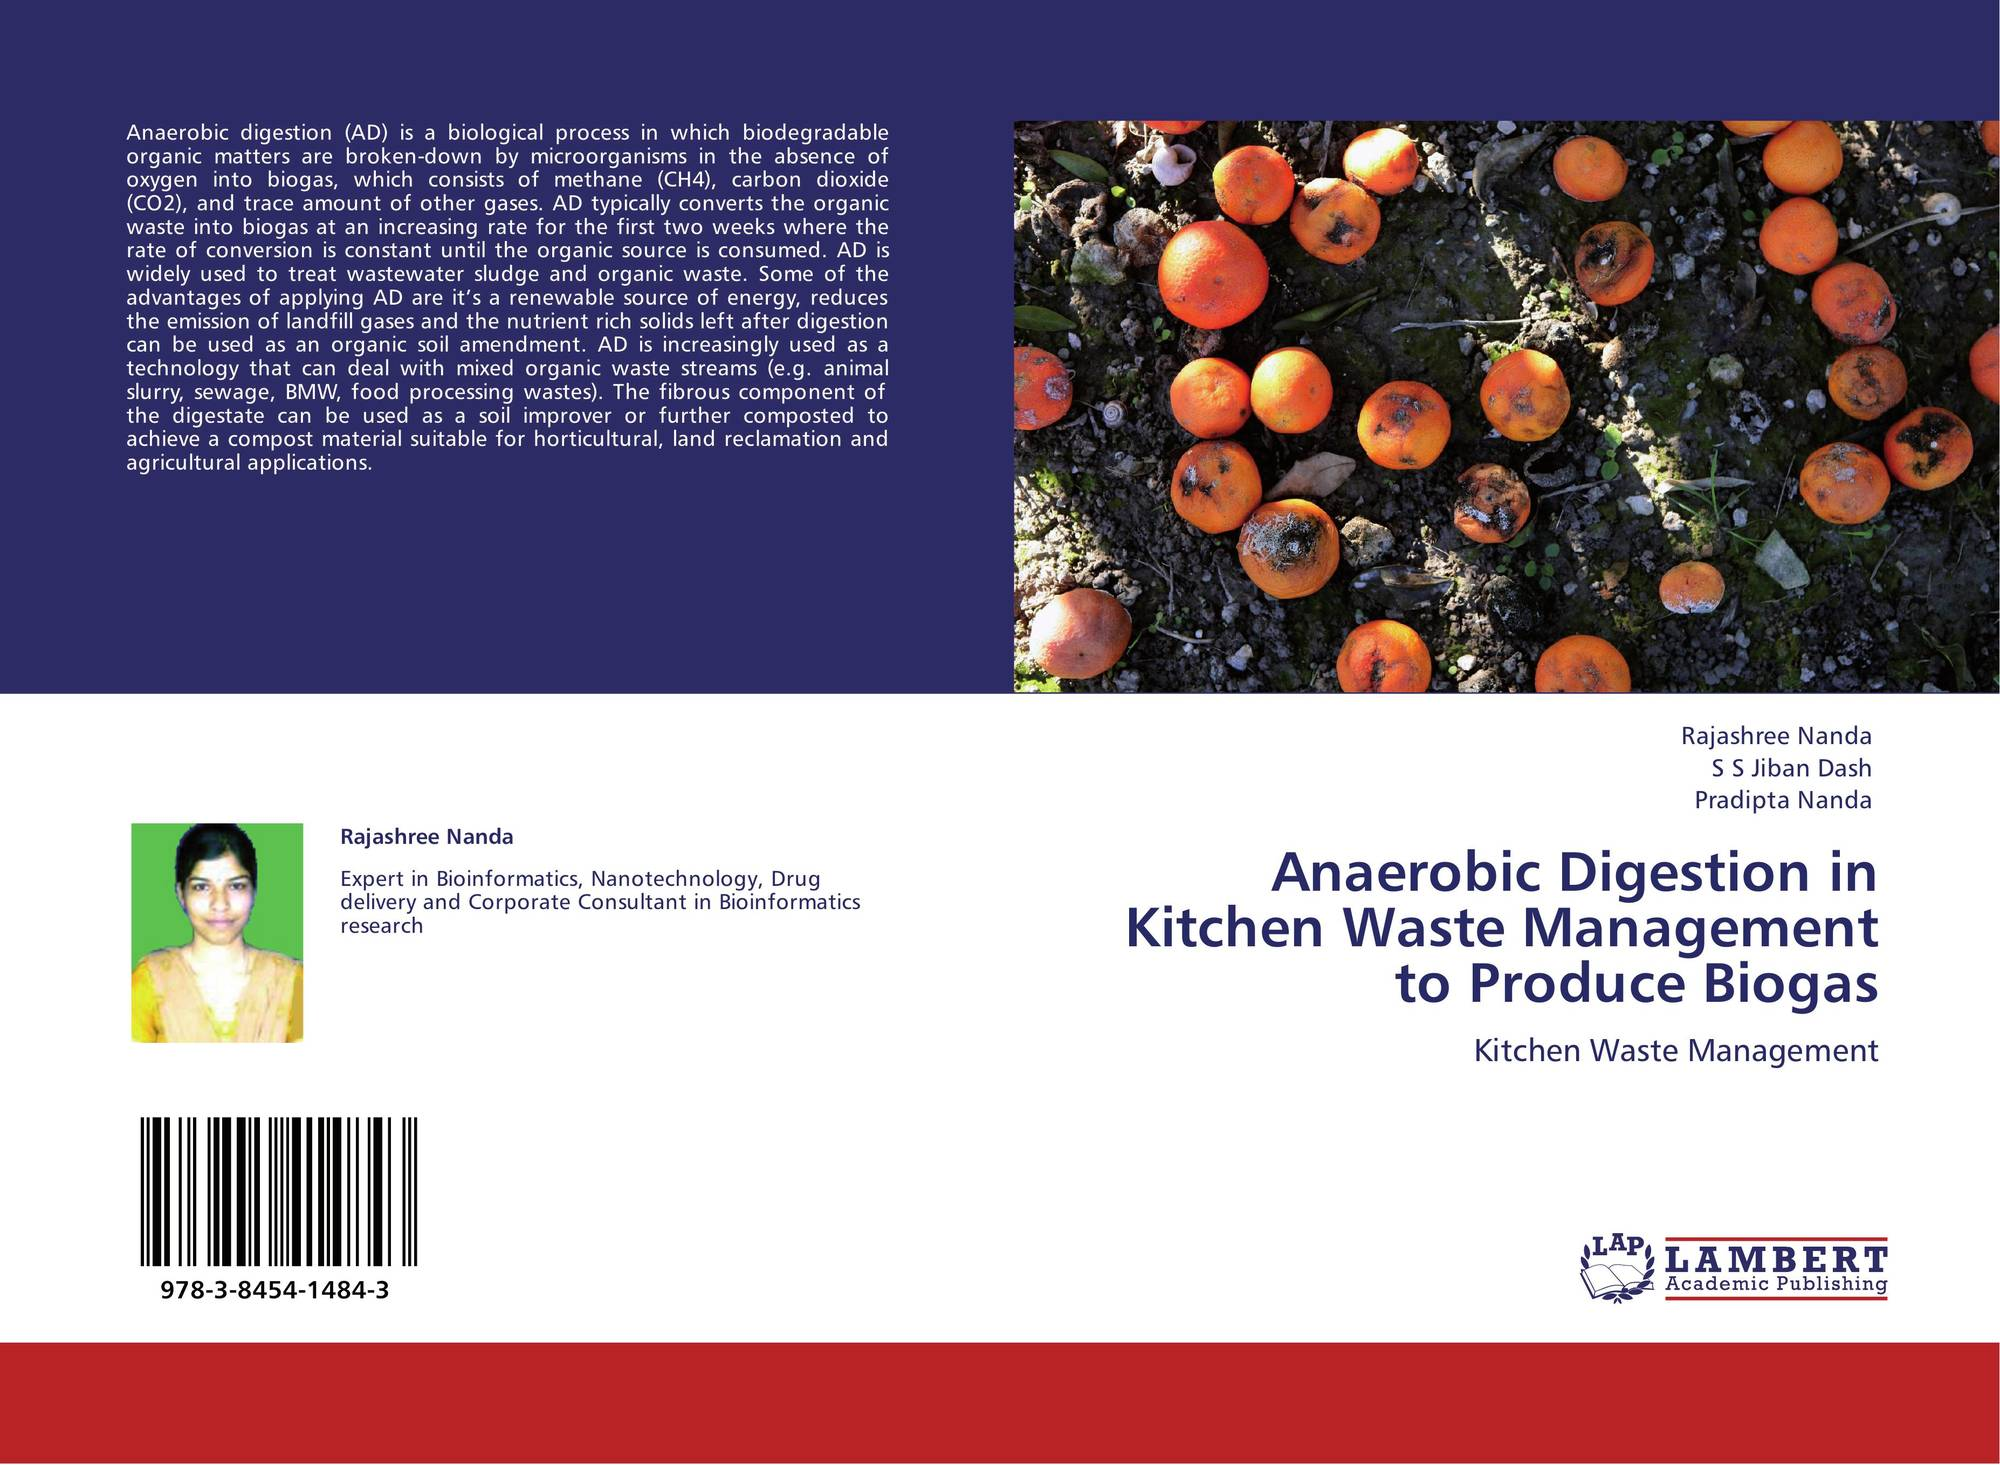 anaerobic digestion on biodegradable waste for